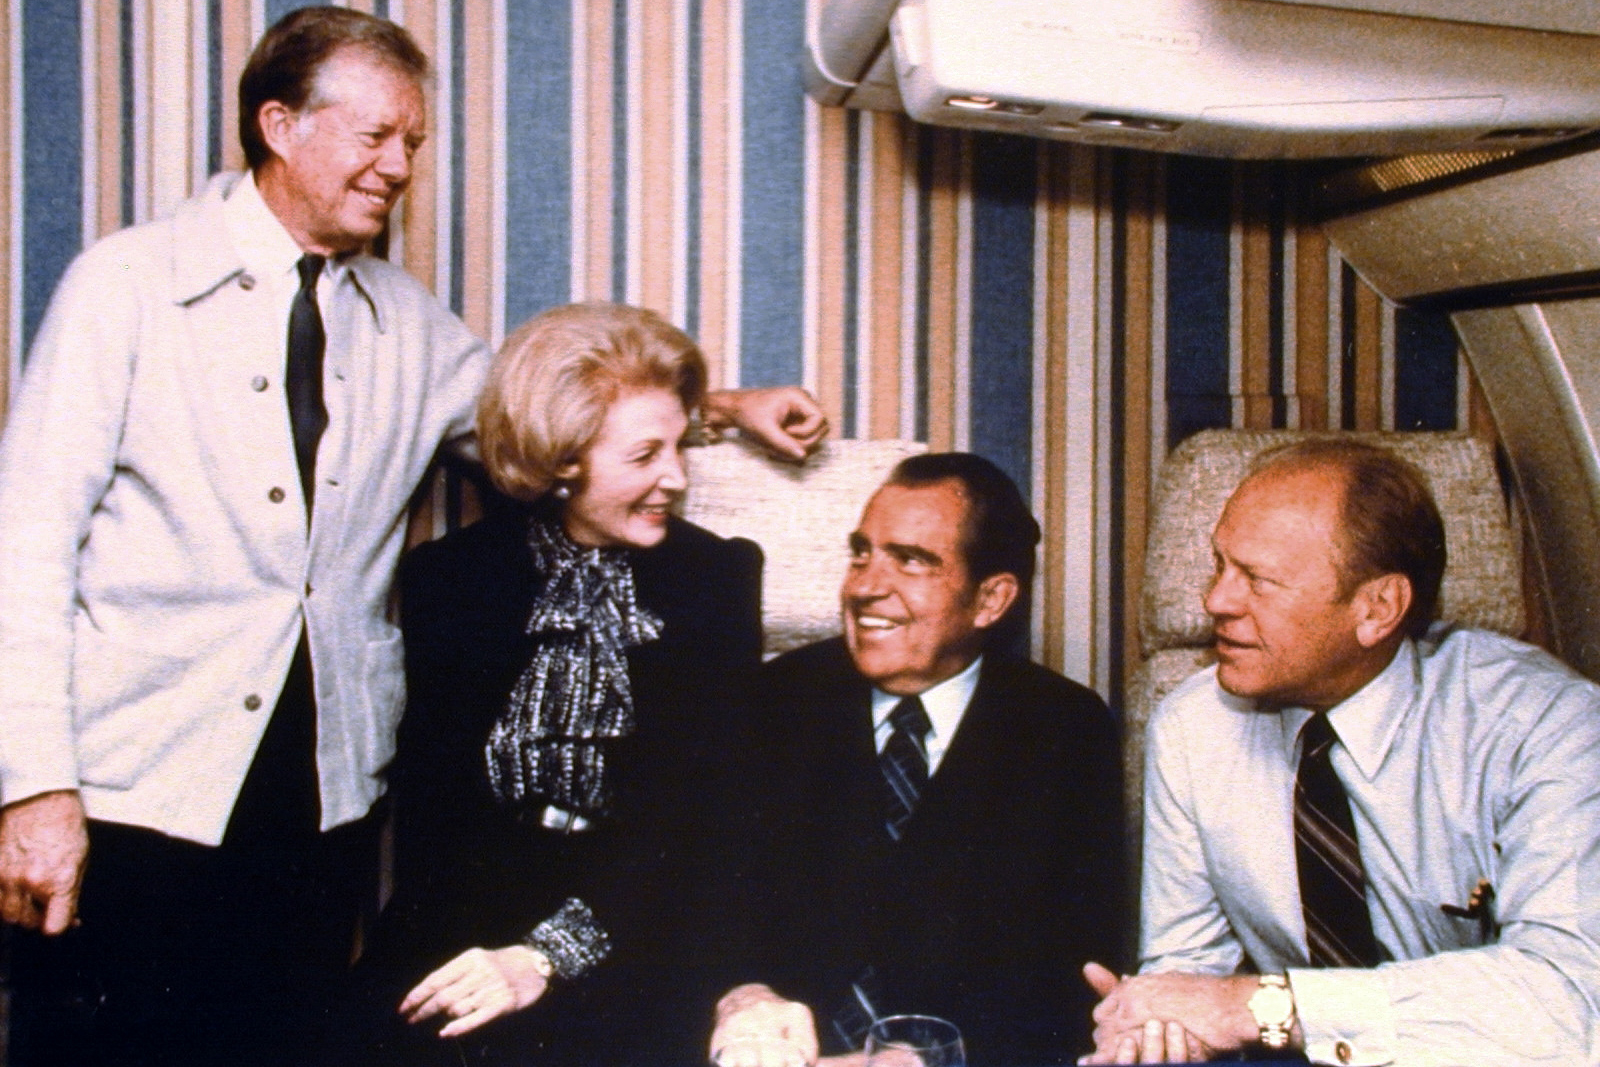 This Oct. 10, 1981 photo released by the Annenberg Foundation Trust at Sunnylands, shows former presidents Jimmy Carter, left,, Richard Nixon, center right, and Gerald Ford with then U.S. Chief of Protocol Leonore Annenberg aboard an Air Force jet carrying them to the funeral of Anwar al-Sadat.